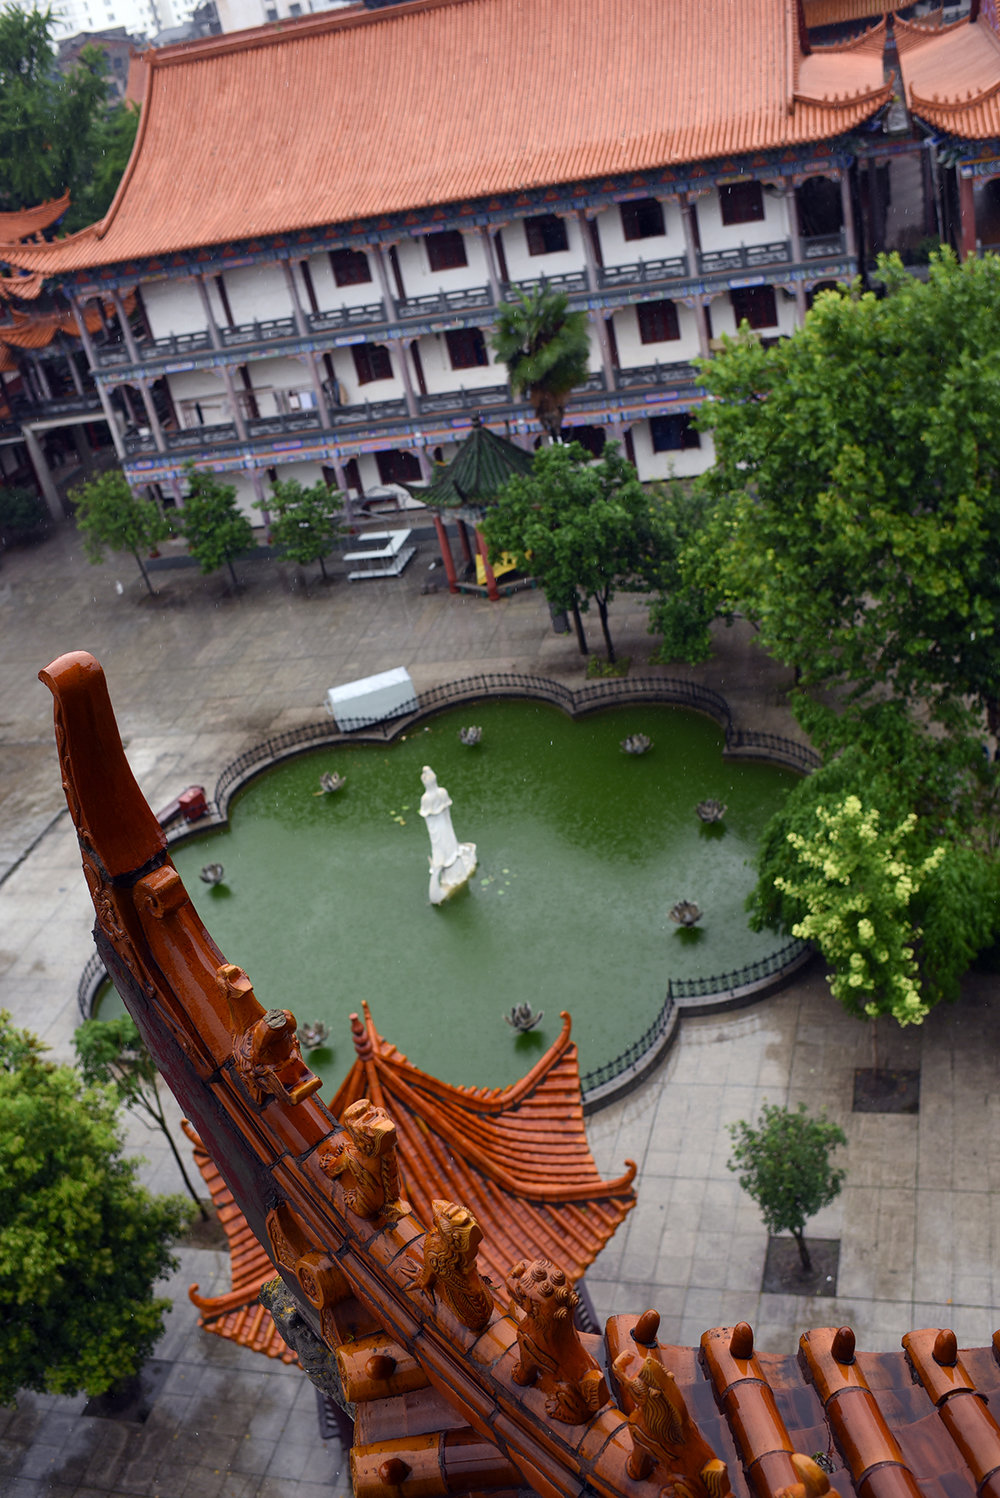 The view from atop the tower at Zhanghua Monastery, Jingzhou